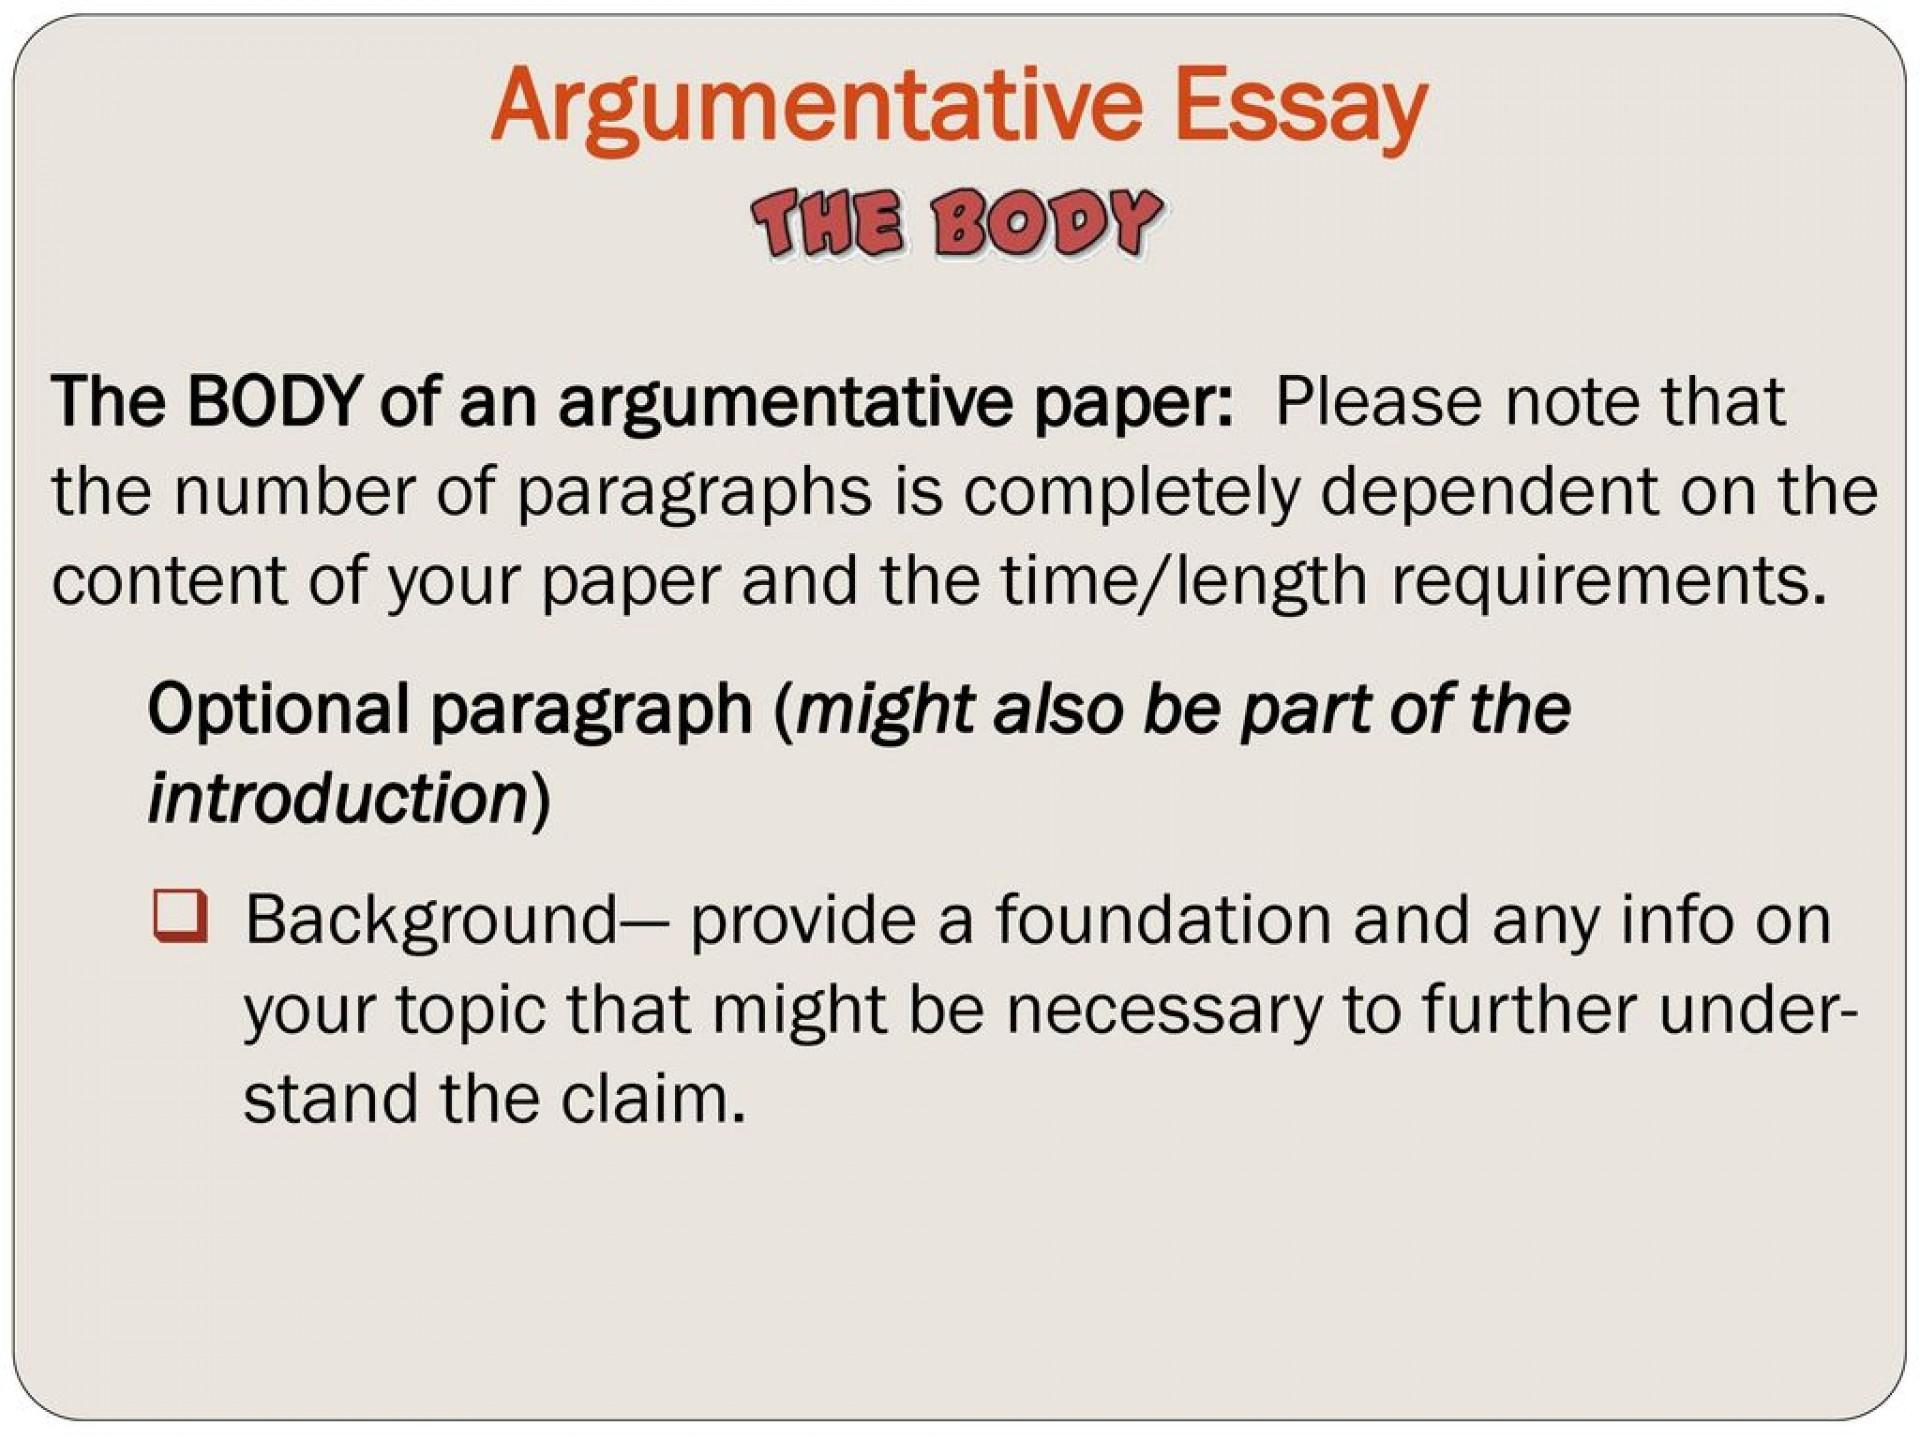 016 What Is Claim In An Argumentative Essay Argumentativeessay Imposing A Apex Effective Brainly For 1920